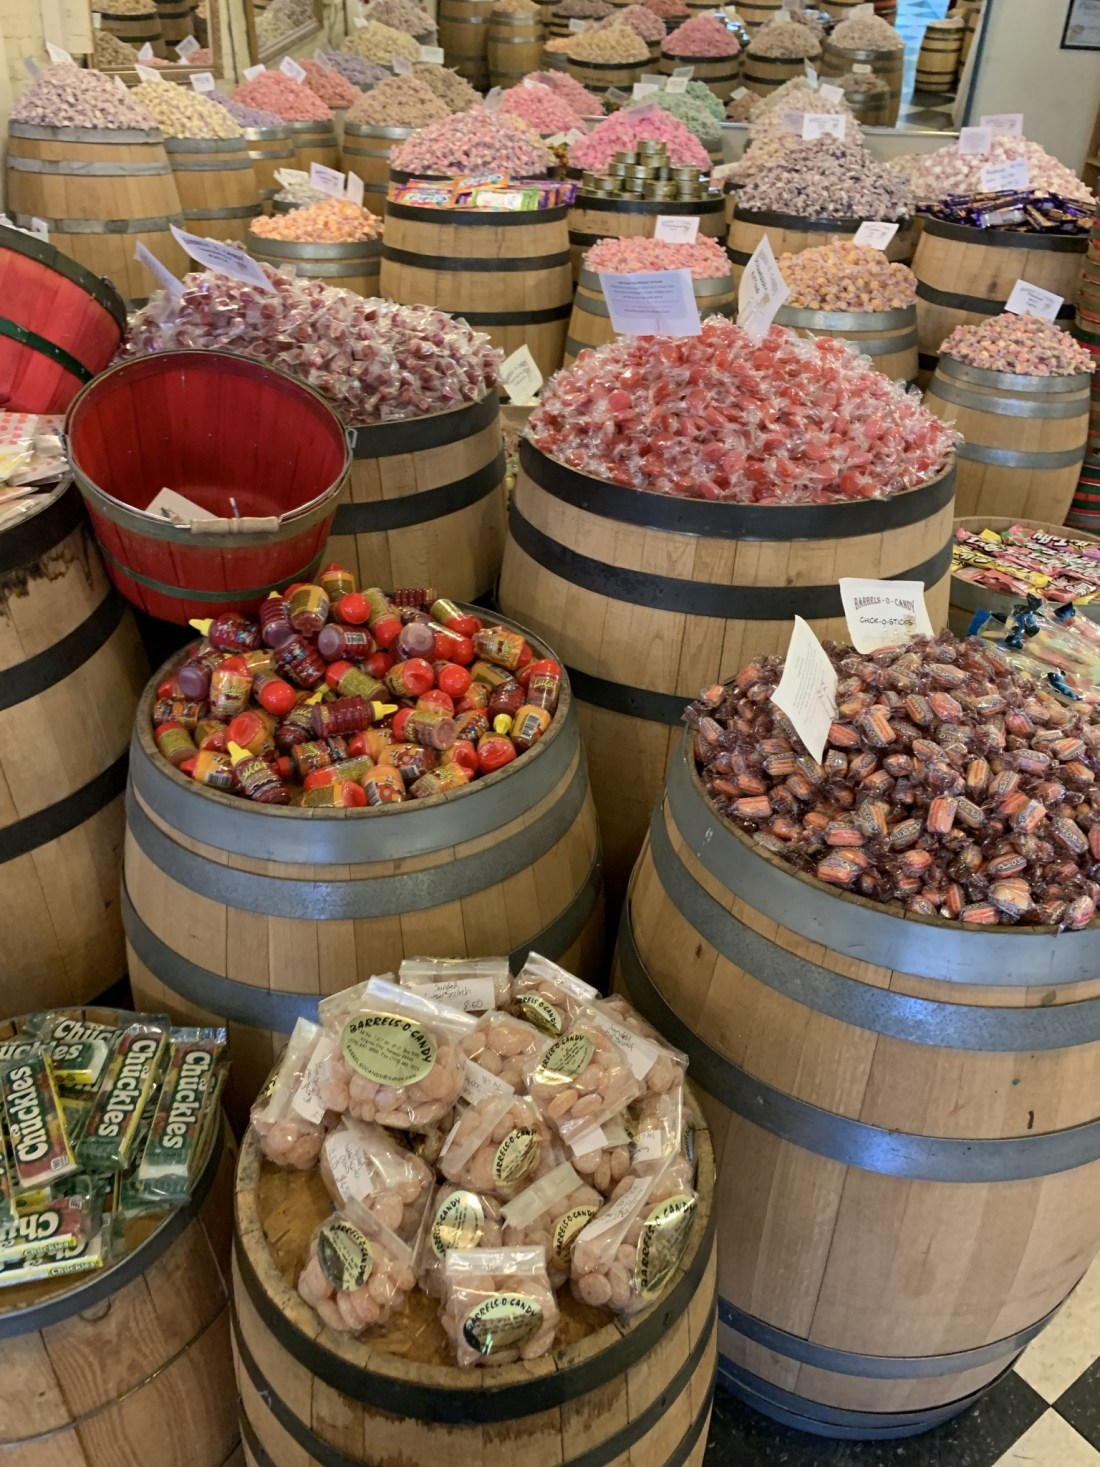 Barrels of Candy